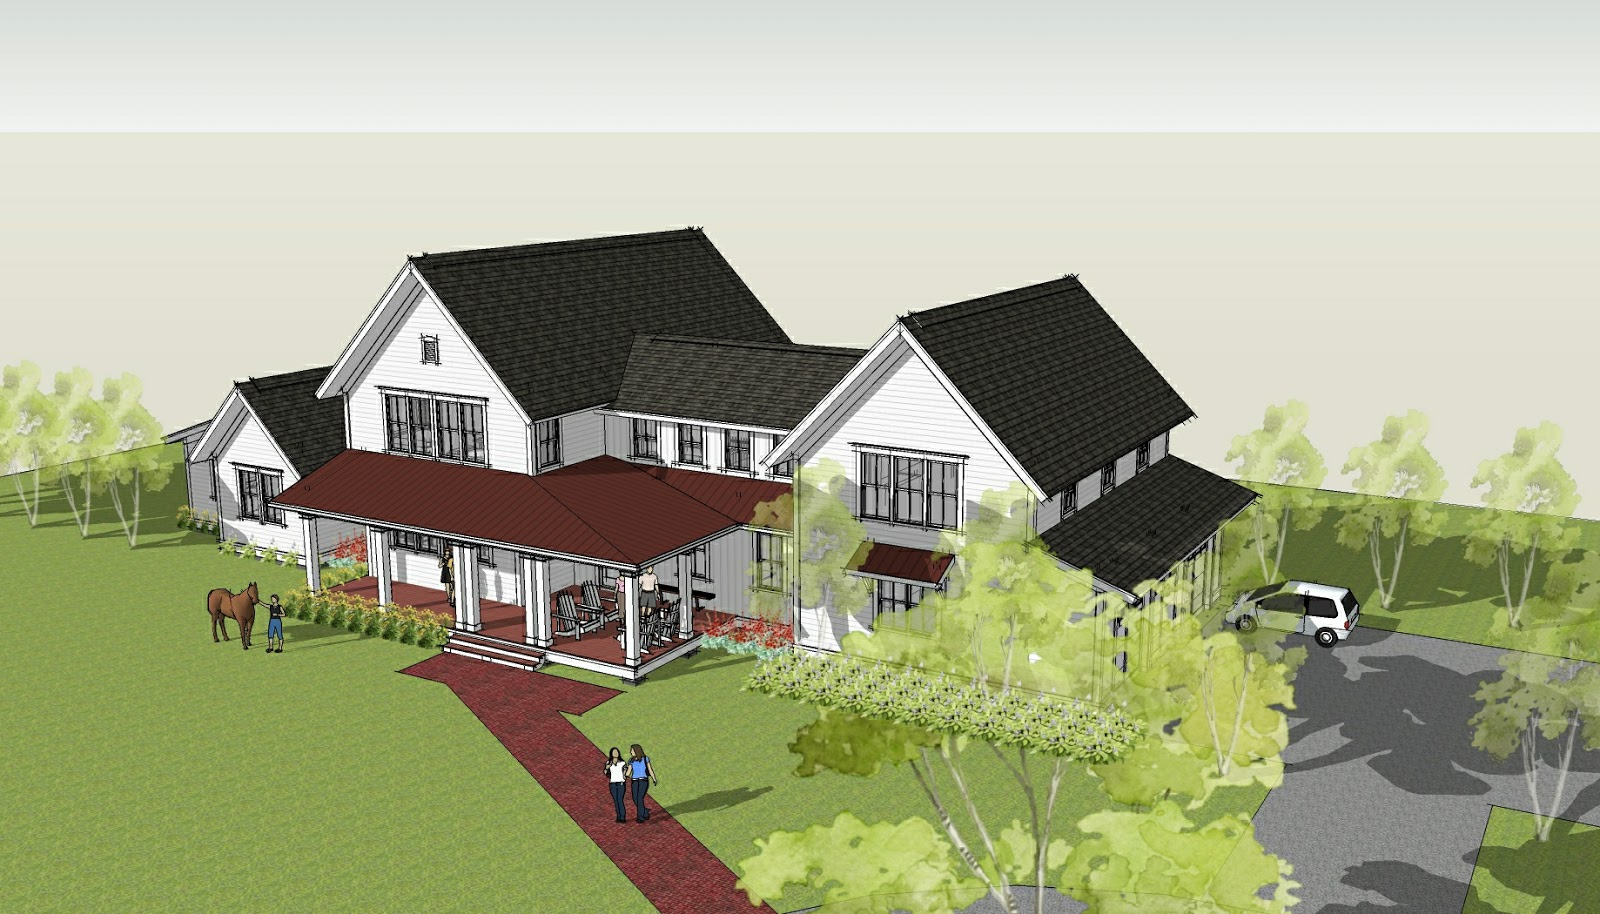 Ron brenner architects new modern farmhouse design completed for Farm house model